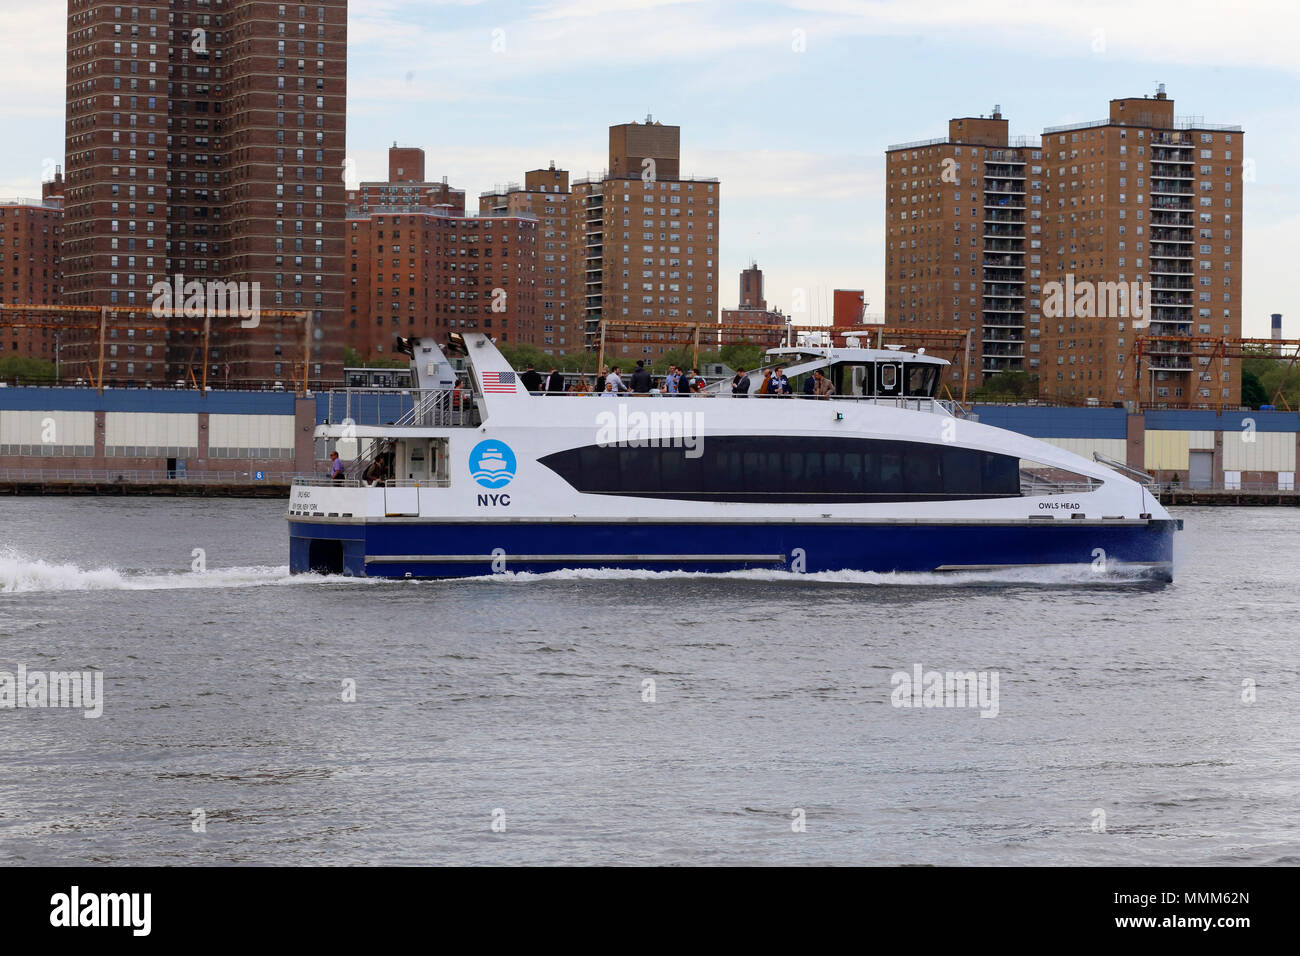 A NYC Ferry boat on the East River - Stock Image